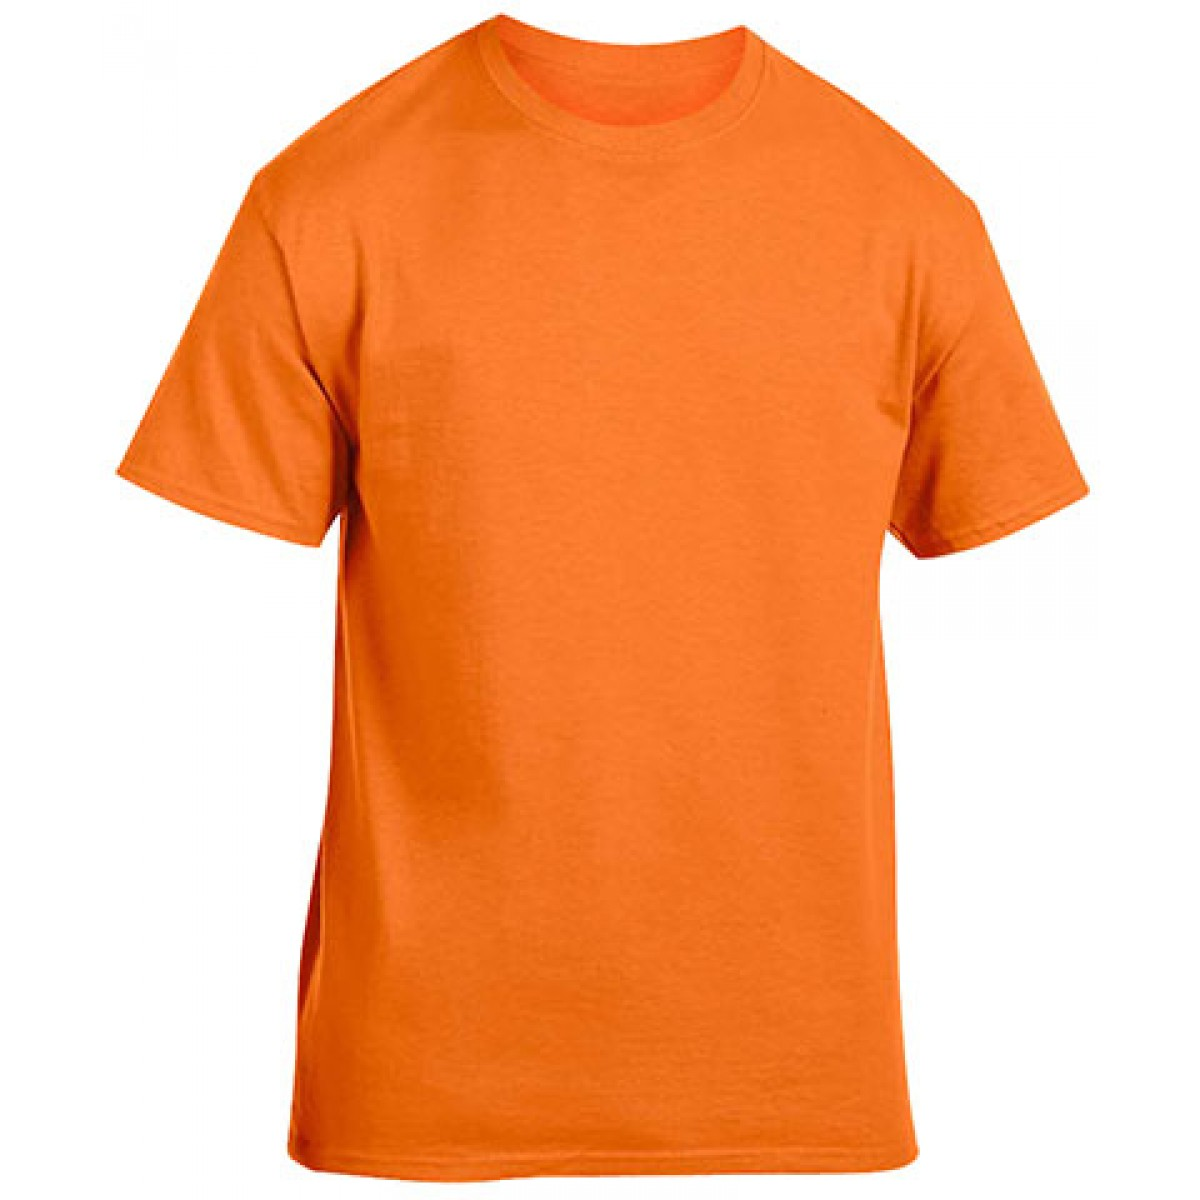 Cotton Short Sleeve T-Shirt-Safety Orange-XL